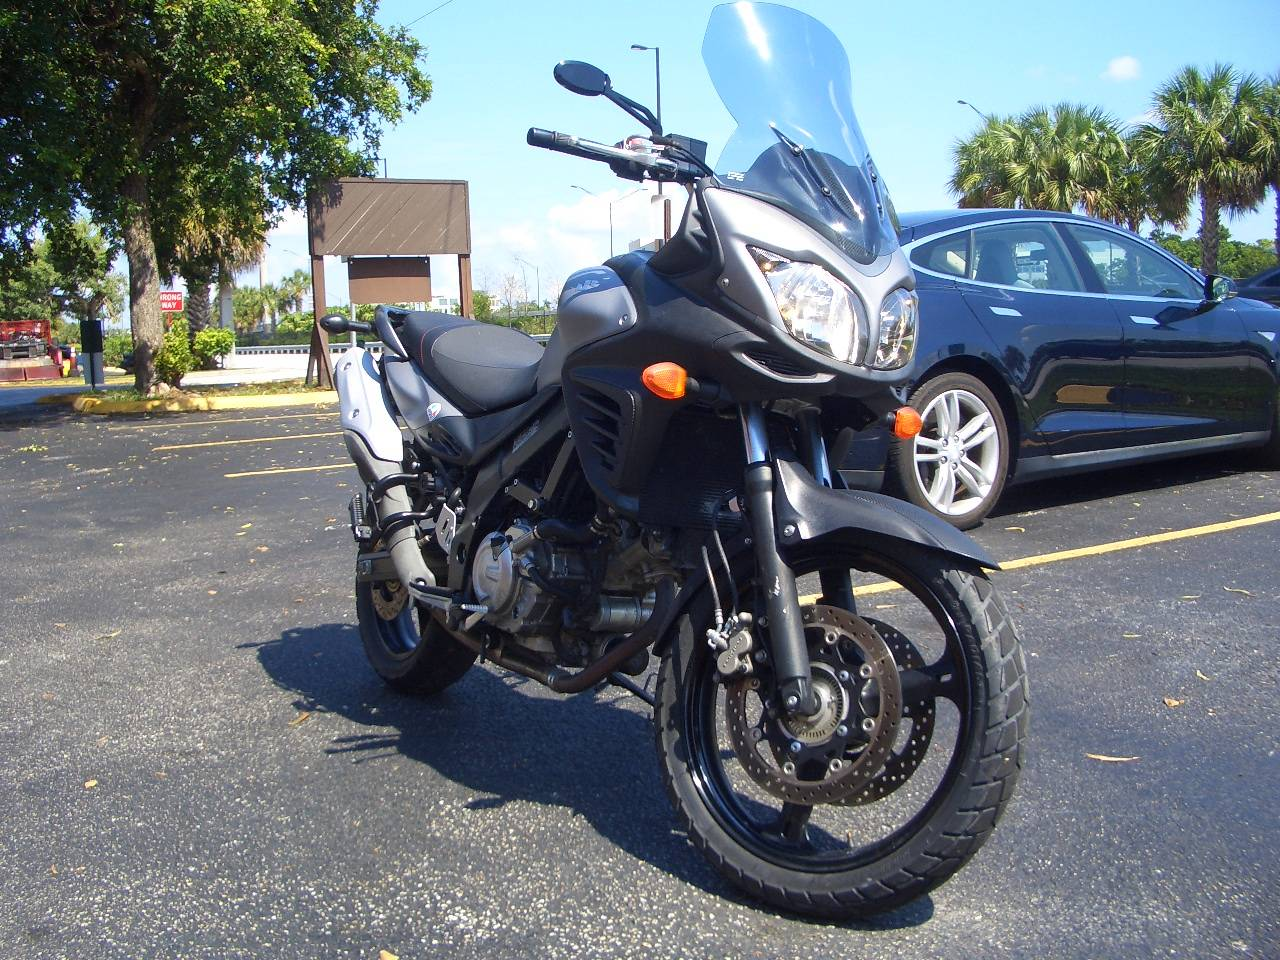 2015 Suzuki V-Strom 650 ABS Adventure in Fort Lauderdale, Florida - Photo 6